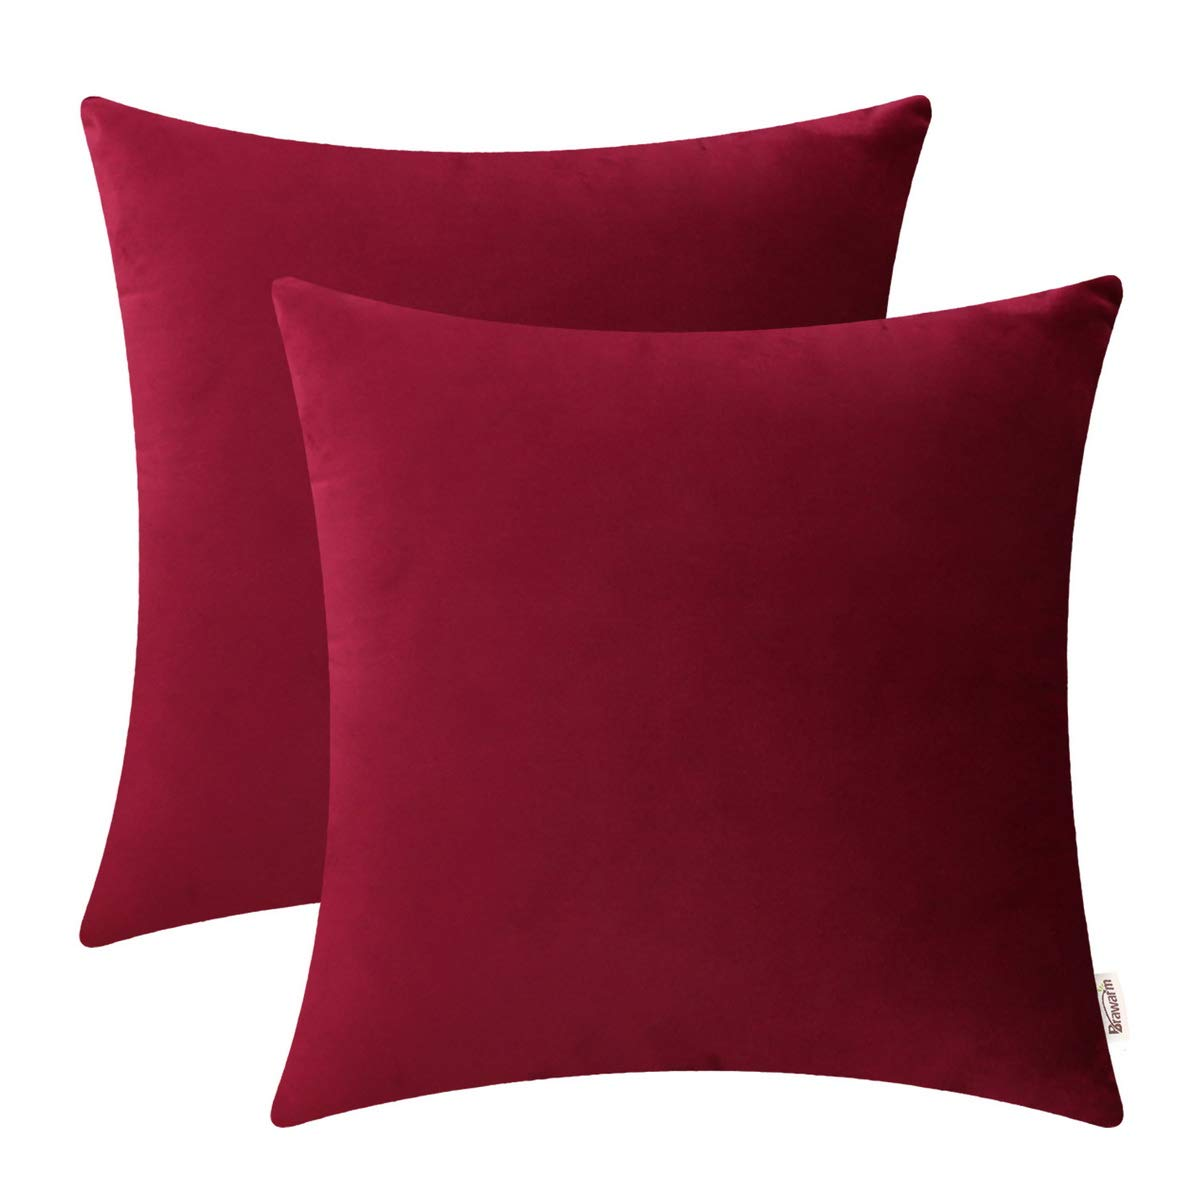 BRAWARM Pack of 2 Cozy Throw Pillow Covers Cases for Couch Sofa Home Decoration Solid Dyed Soft Velvet Both Sides 22 X 22 Inches Burgundy